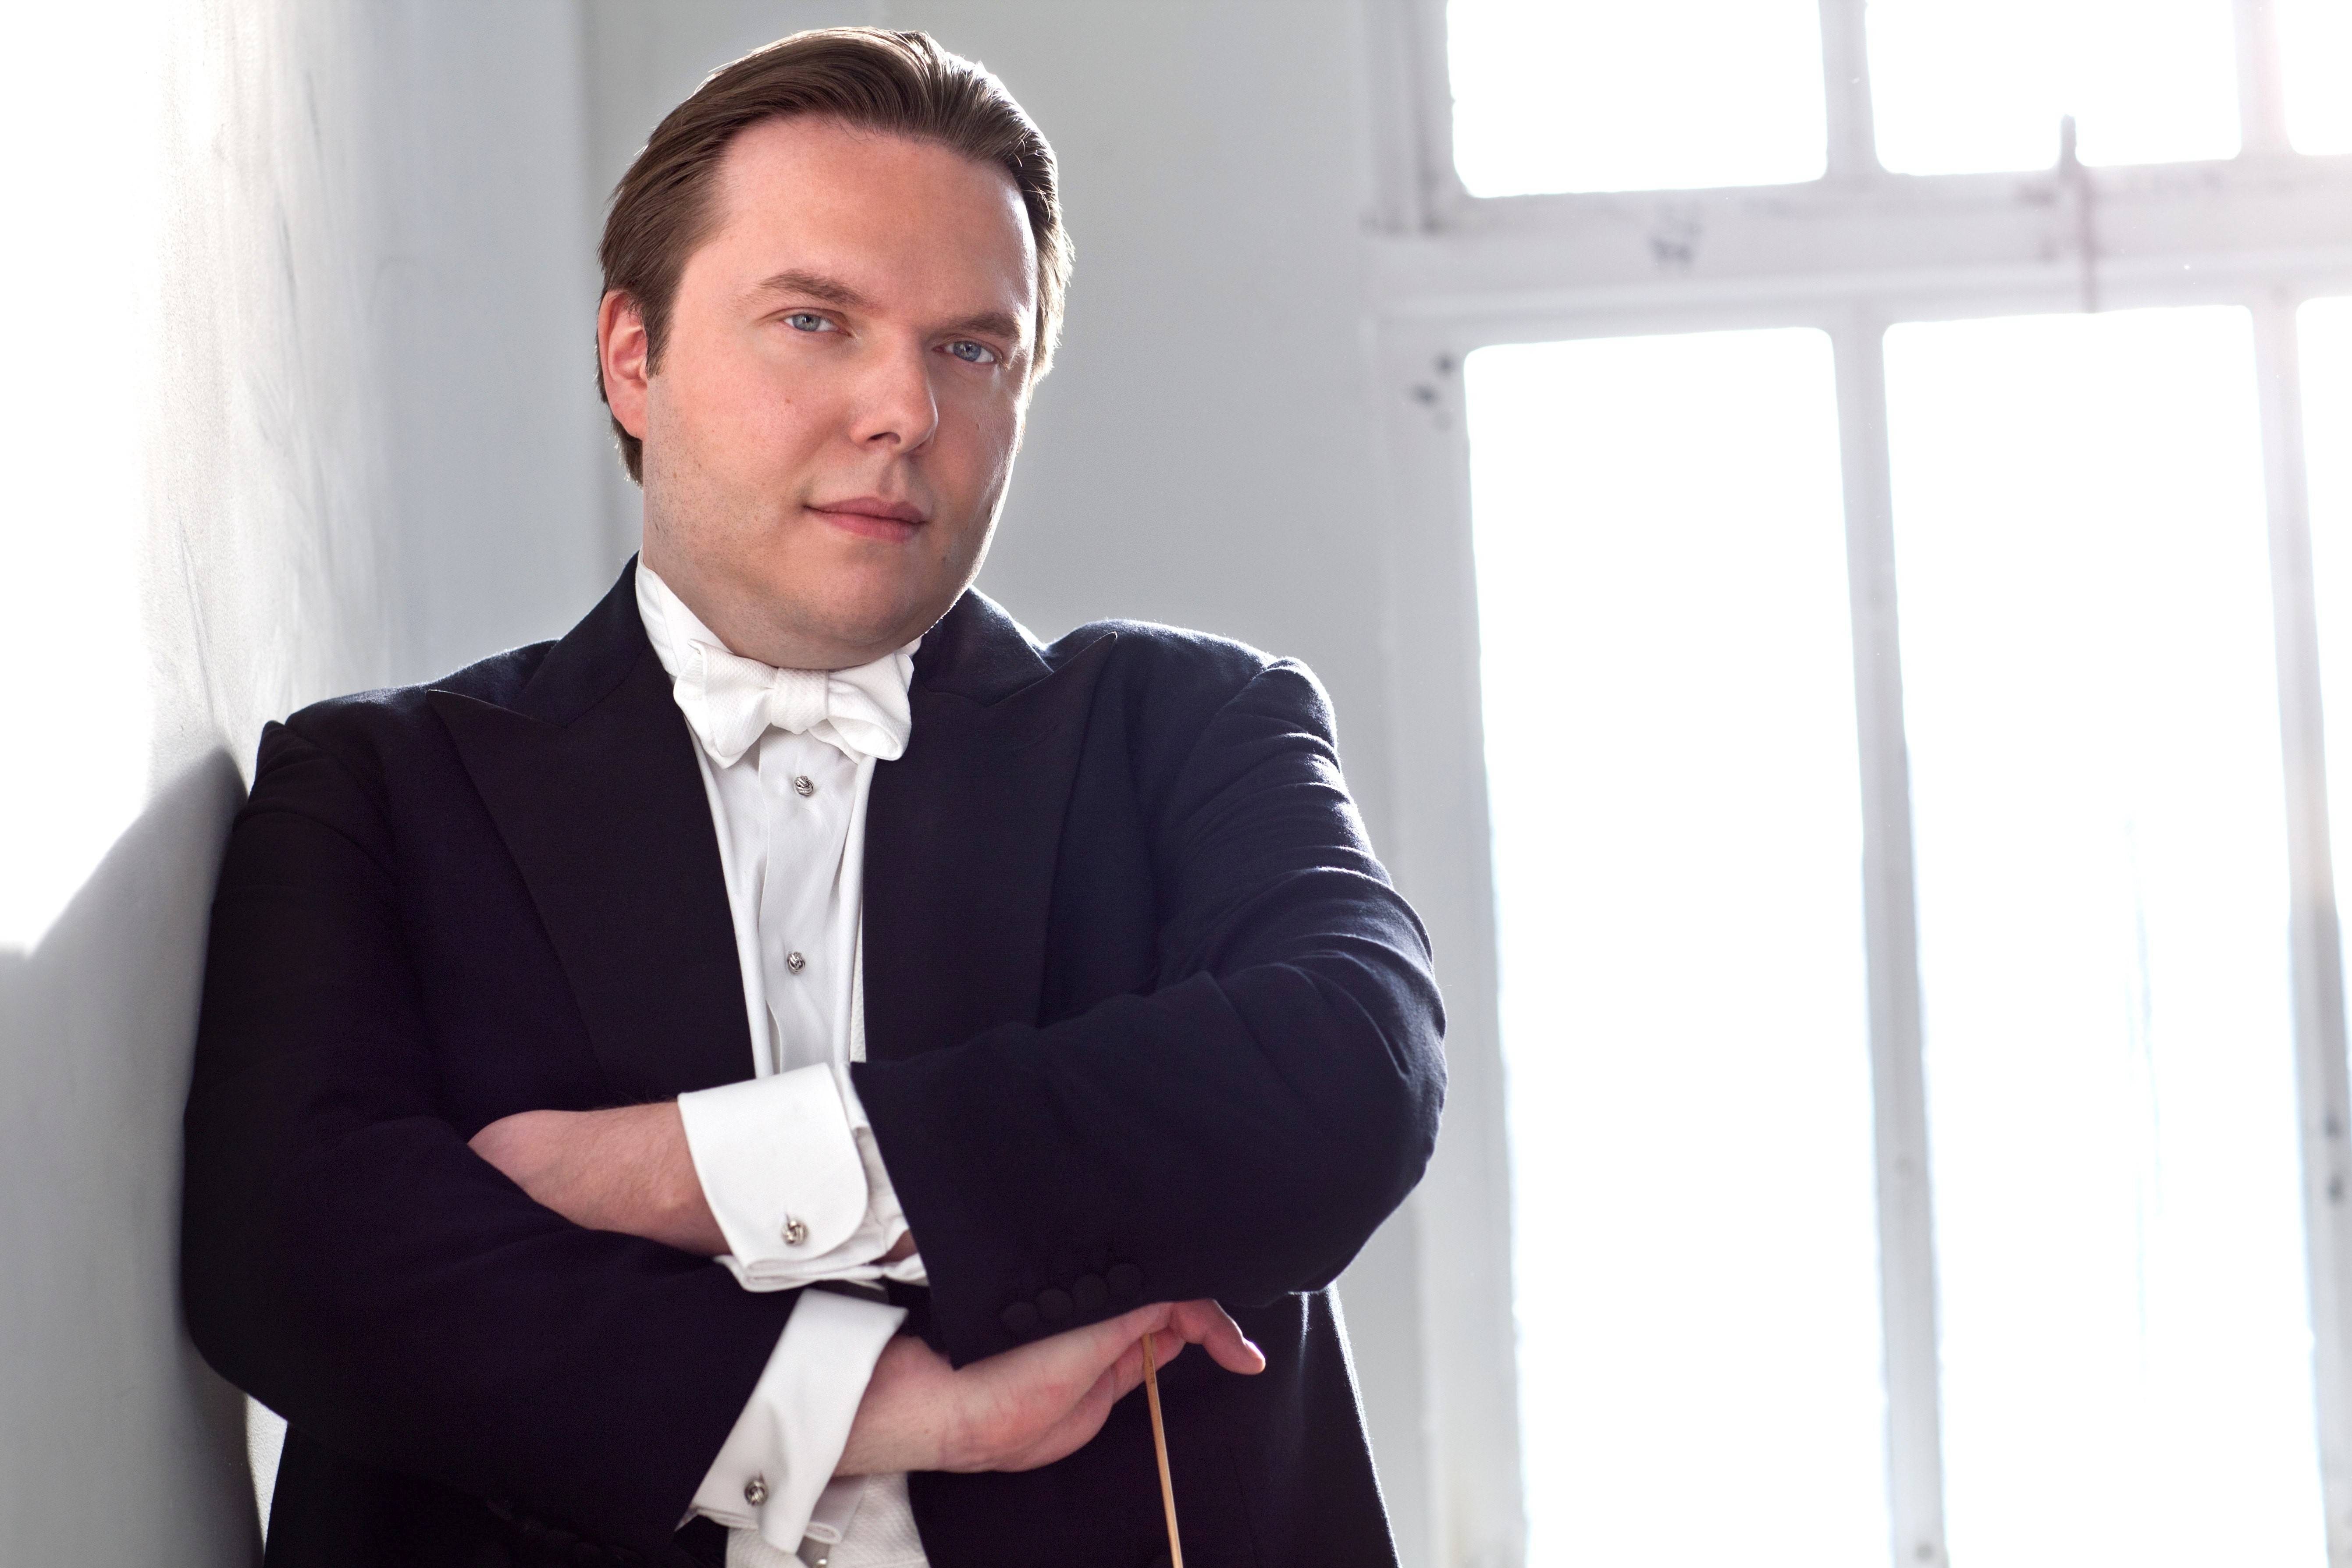 Conductor and pianist Ignat Solzhenitsyn will perform with the Elgin Symphony Orchestra this weekend.